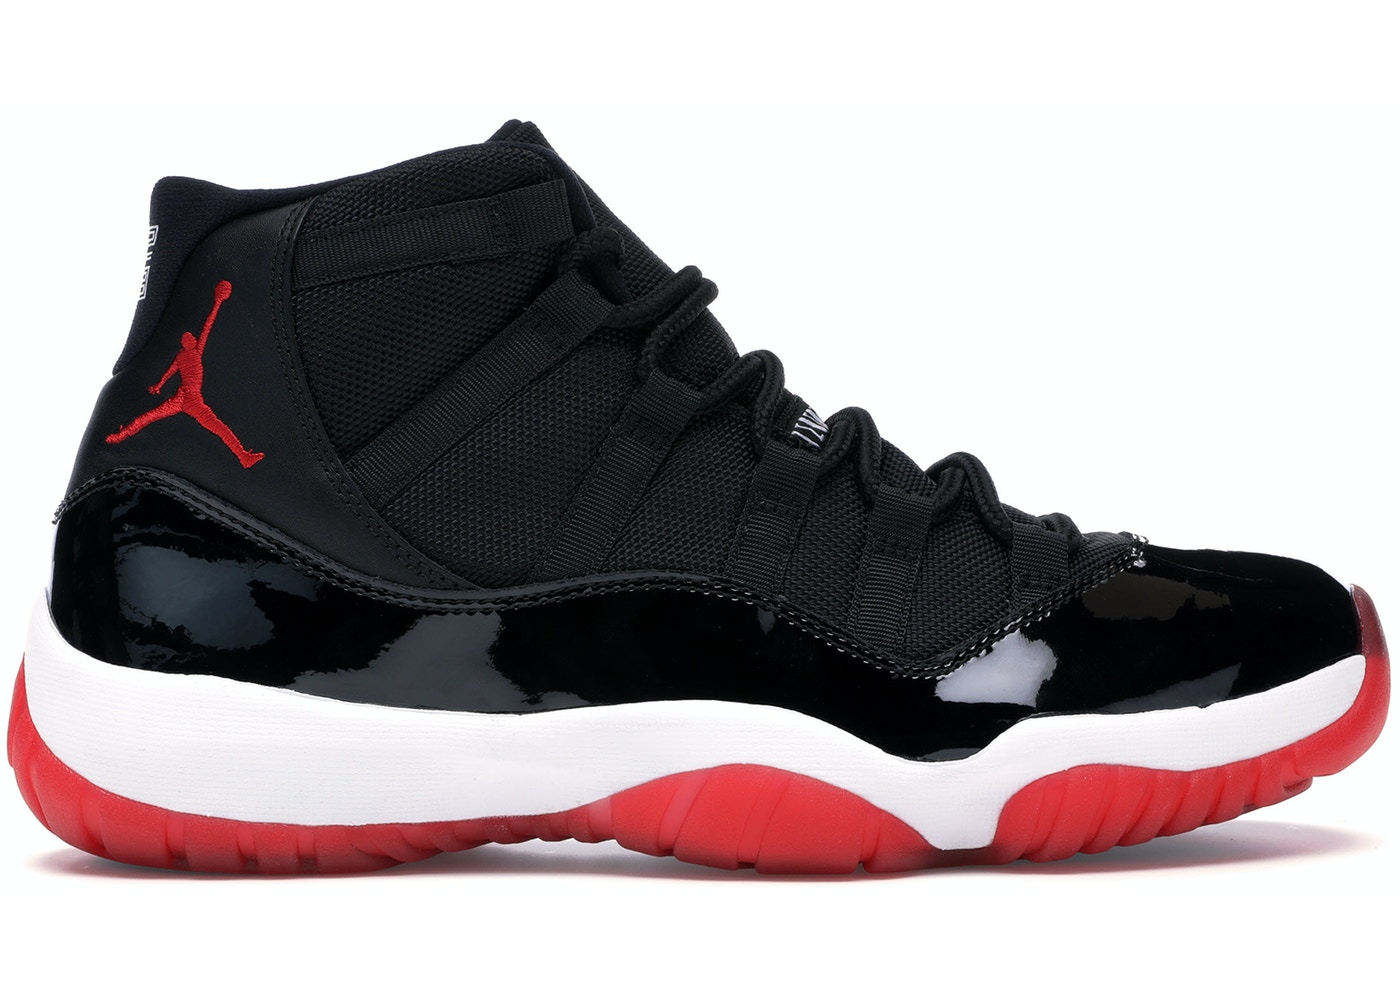 eff811376e70 Buy Air Jordan 11 Shoes   Deadstock Sneakers